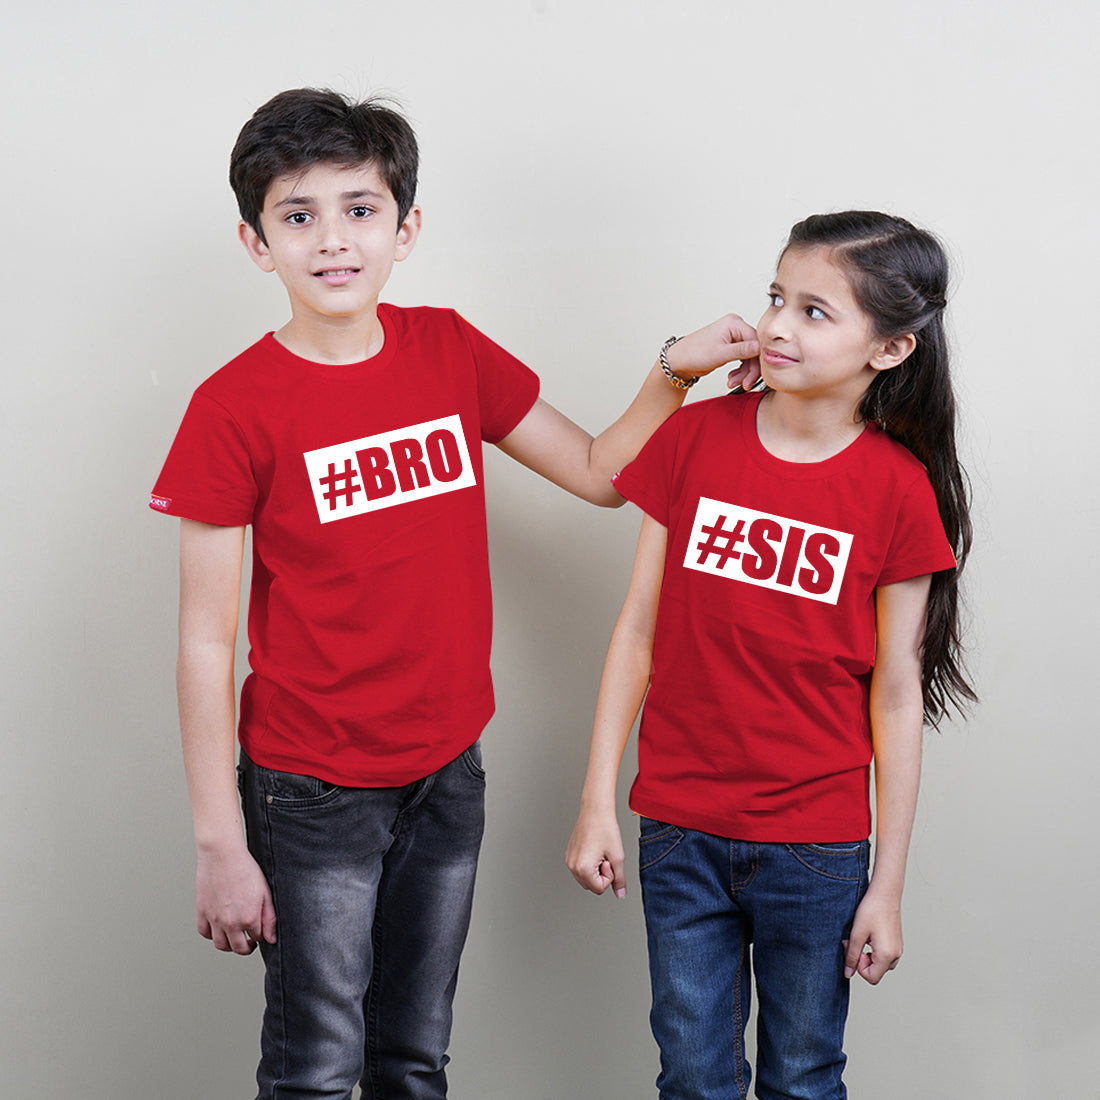 #SIS #BRO Brother Sister Sibling TShirts